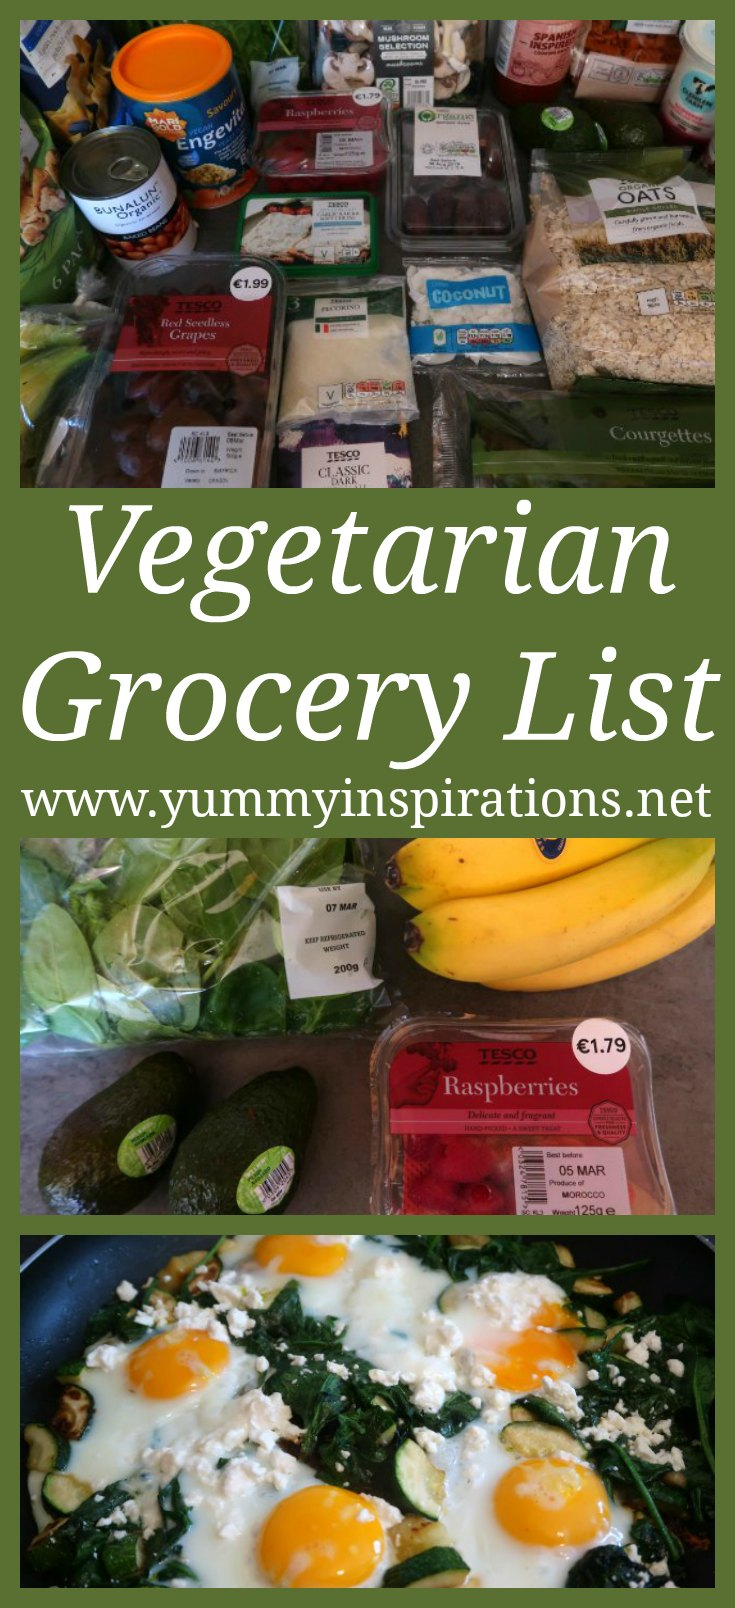 Vegetarian Grocery List - a healthy shopping list of food for beginners to a vegetarian diet - great for meal planning and recipe ideas.